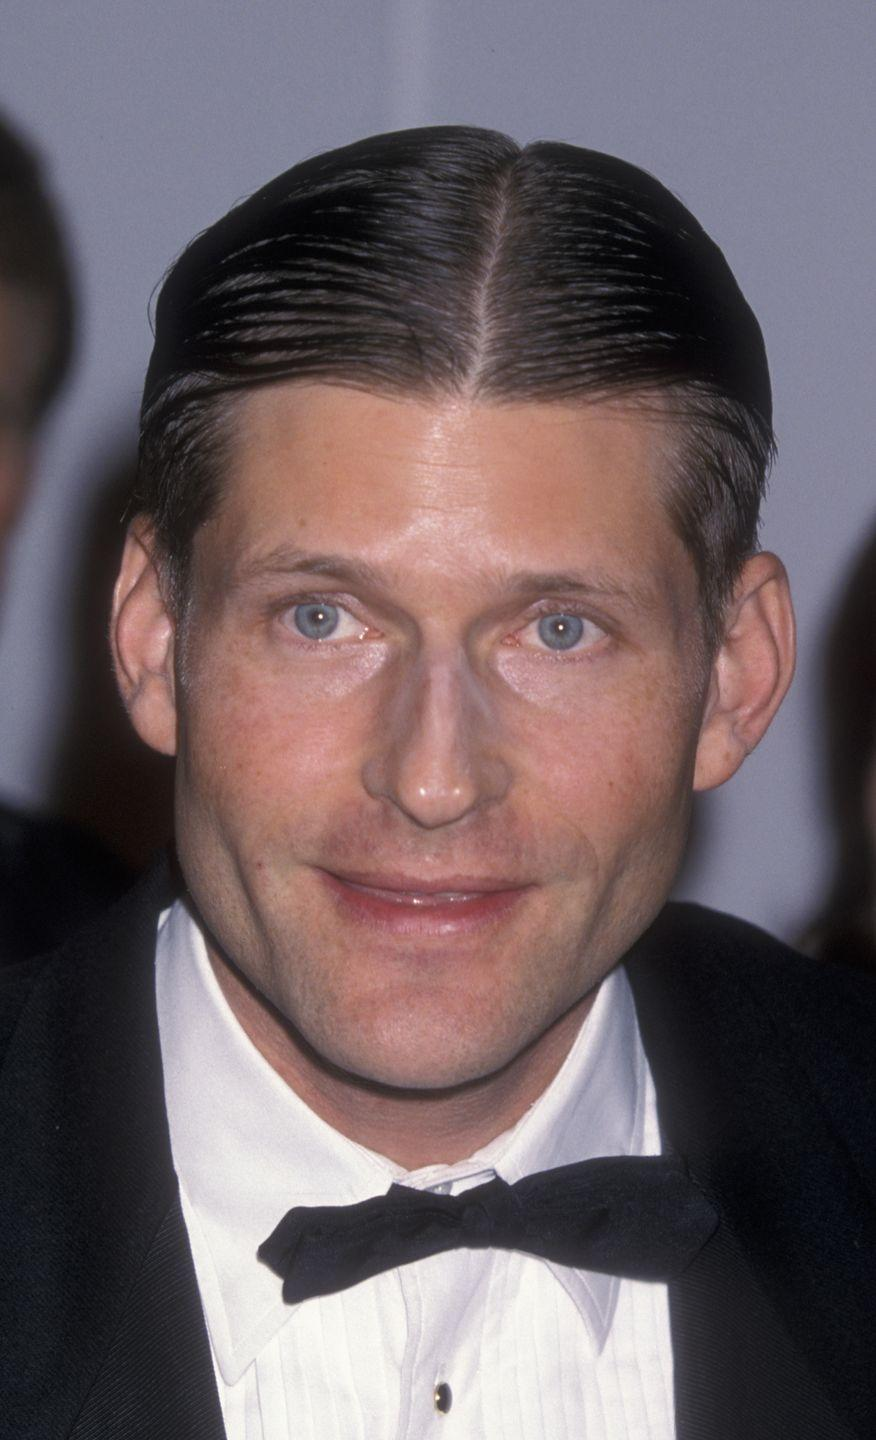 "<p>It turns out not everyone was a fan of <em>Back to the Future.</em> Crispin Glover, who played Marty McFly's father, didn't approve of the trilogy's ending. He even went as far as discussing it with the film's director, Robert Zemeckis: ""I said, 'I think if the characters have money, if our characters are rich, it's a bad message. That reward should not be in there,'"" he told <a href=""https://film.avclub.com/crispin-glover-1798229277"" rel=""nofollow noopener"" target=""_blank"" data-ylk=""slk:AV Club"" class=""link rapid-noclick-resp"">AV Club</a>.<br></p>"